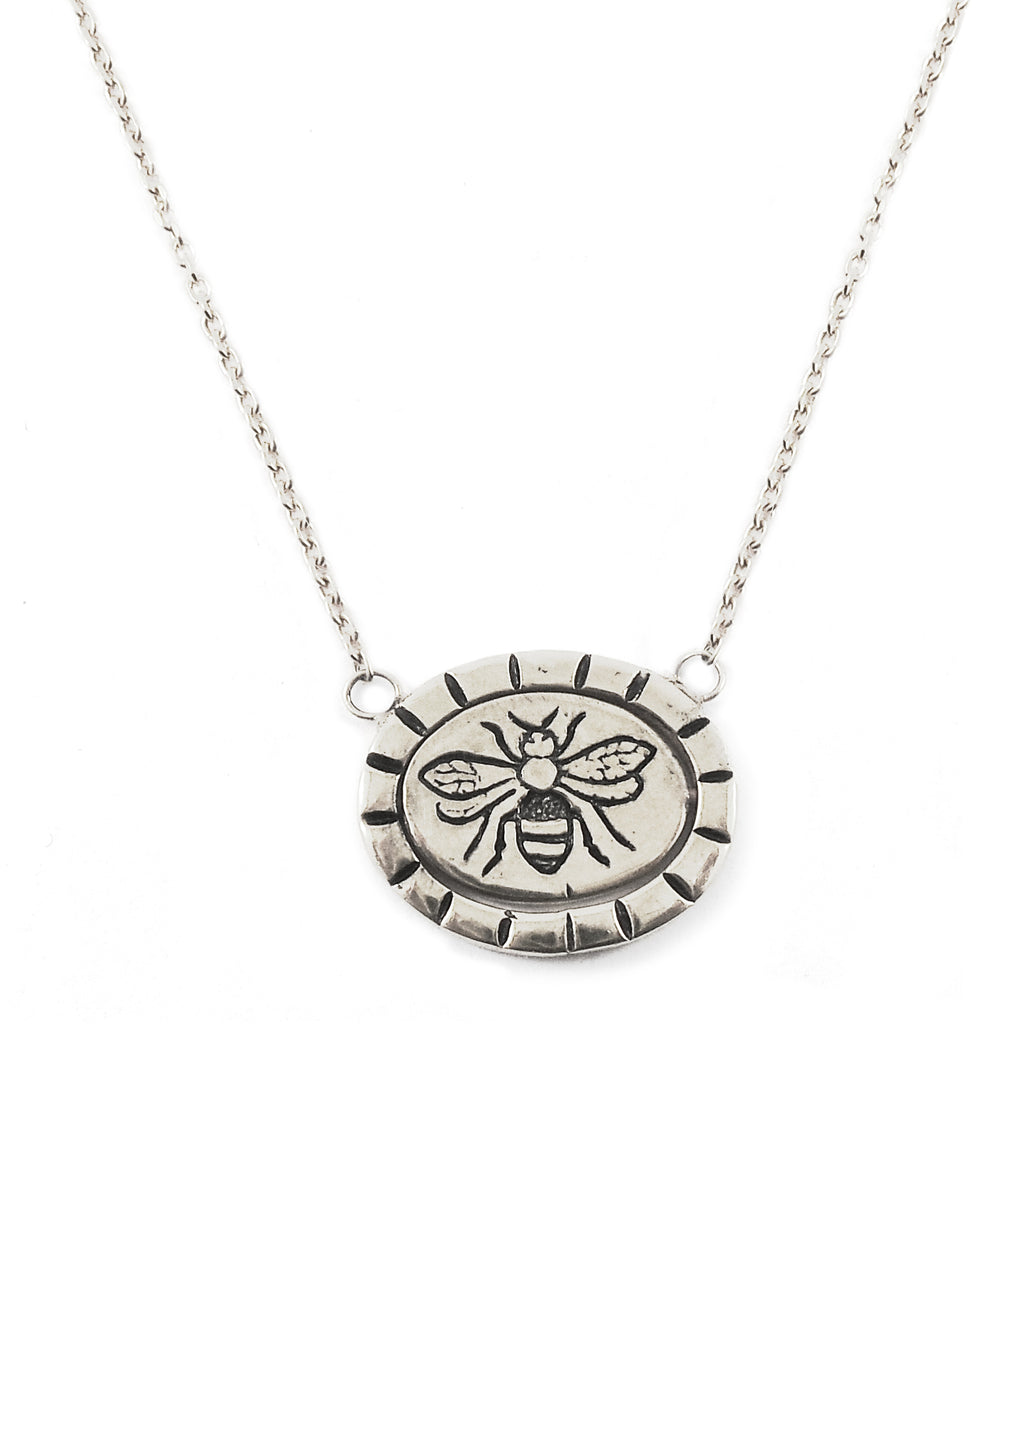 Hunt Of Hounds Bee Mine Necklace in silver. Spinning pendant necklace with bee image and the word mine on reverse. Unisex.